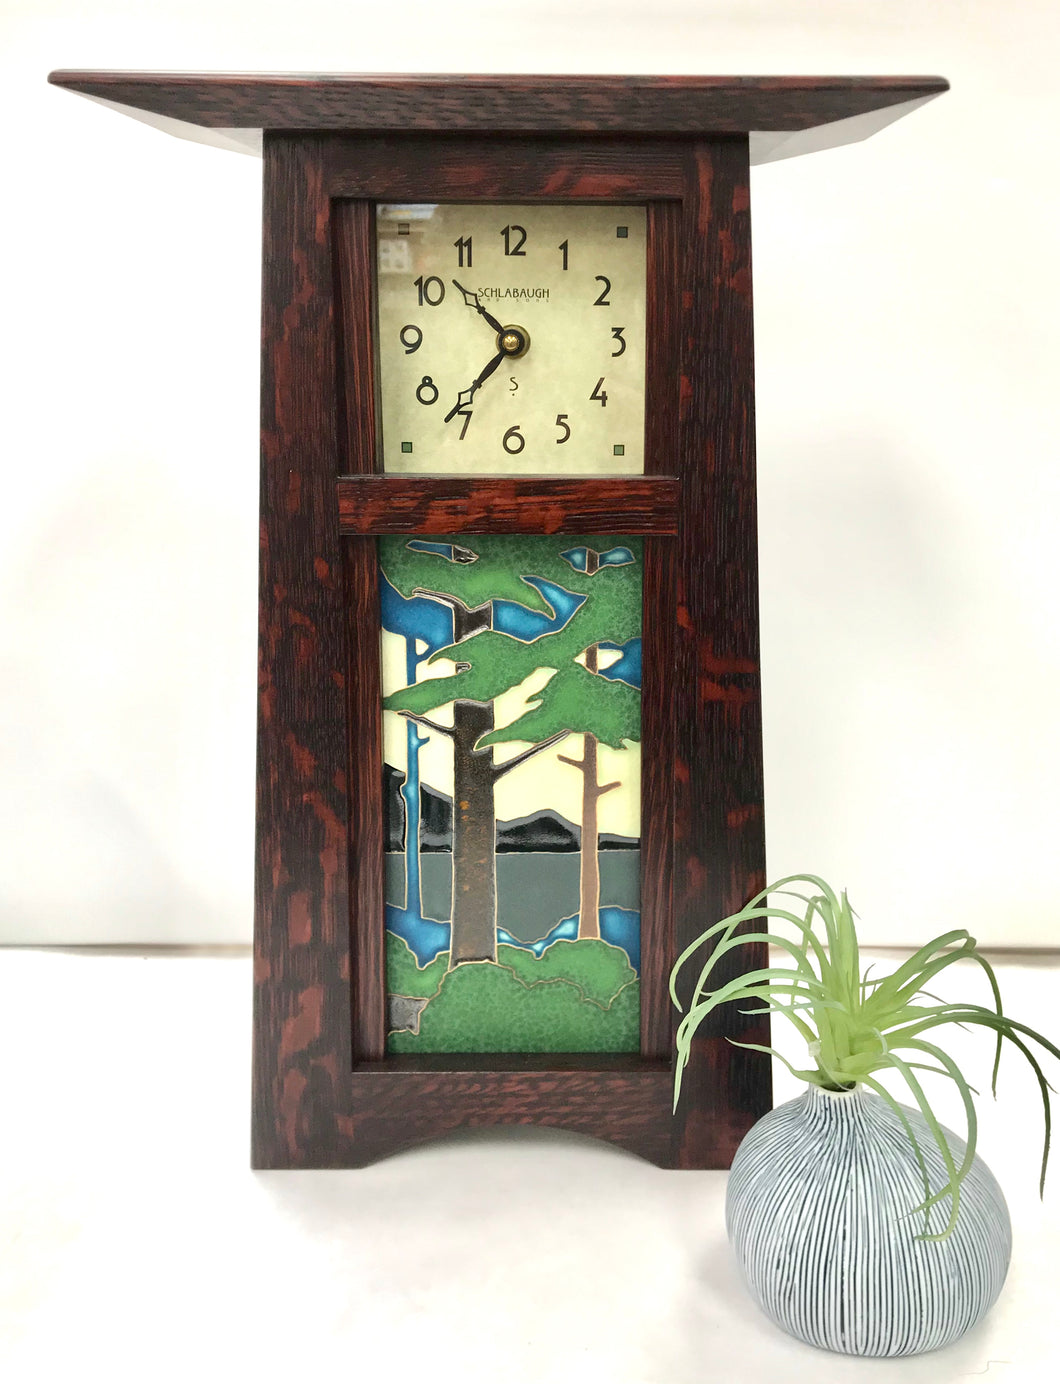 Craftsman Landscape Clock - Schlabaugh & Sons